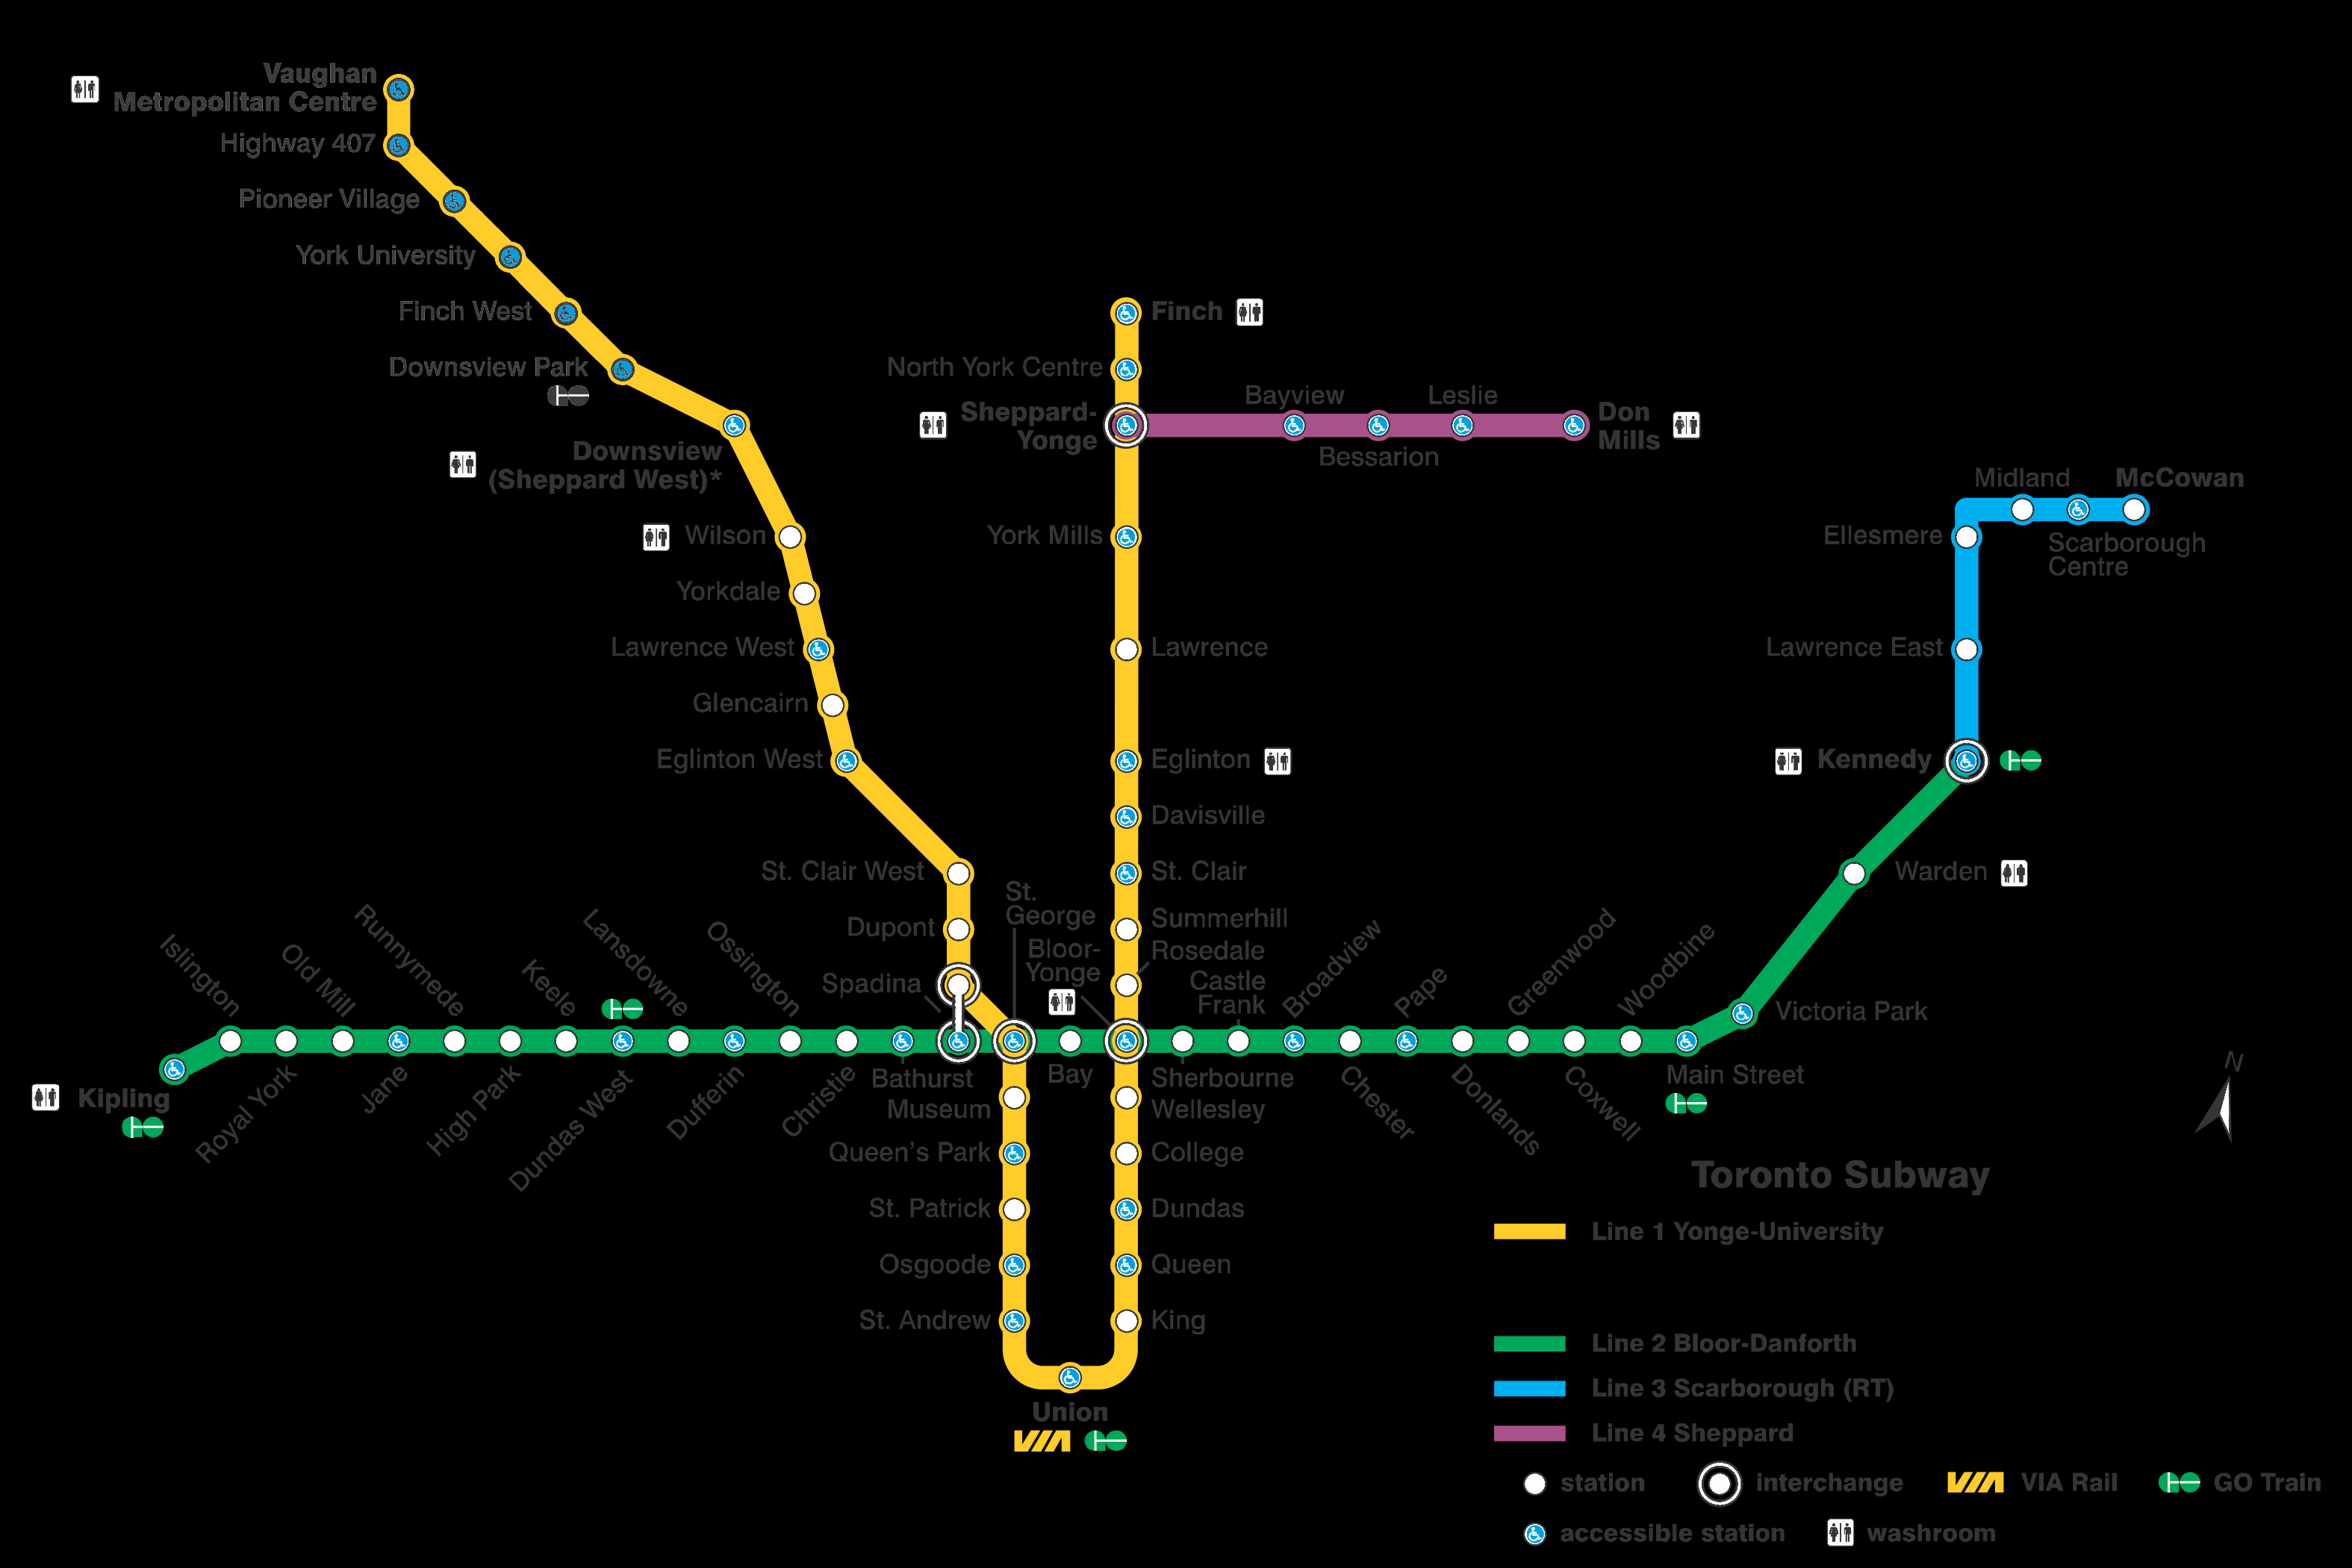 Toronto Subway System Info Interactive TTC Subway Map - Google maps paris france metro